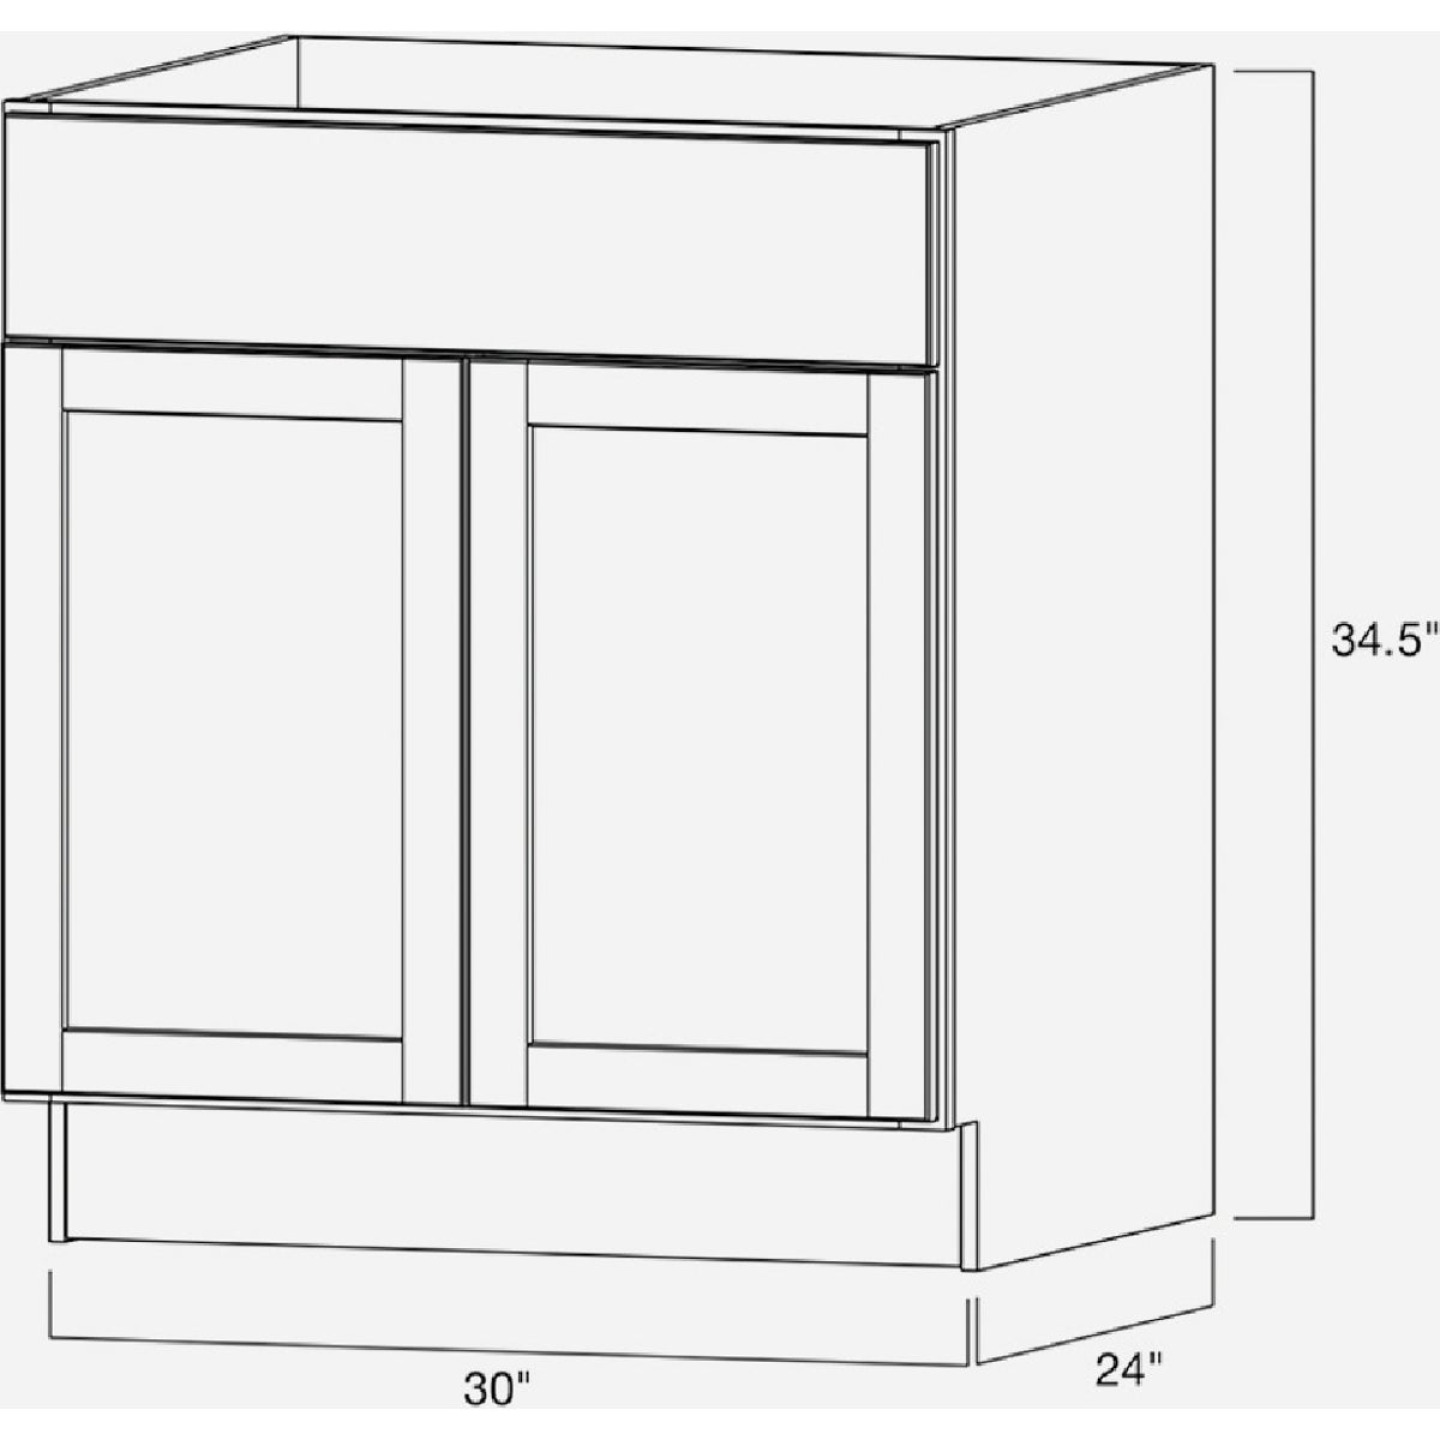 Continental Cabinets Andover Shaker 30 In. W x 34-1/2 In. H x 24 In. D White Thermofoil Sink Base Kitchen Cabinet Image 4